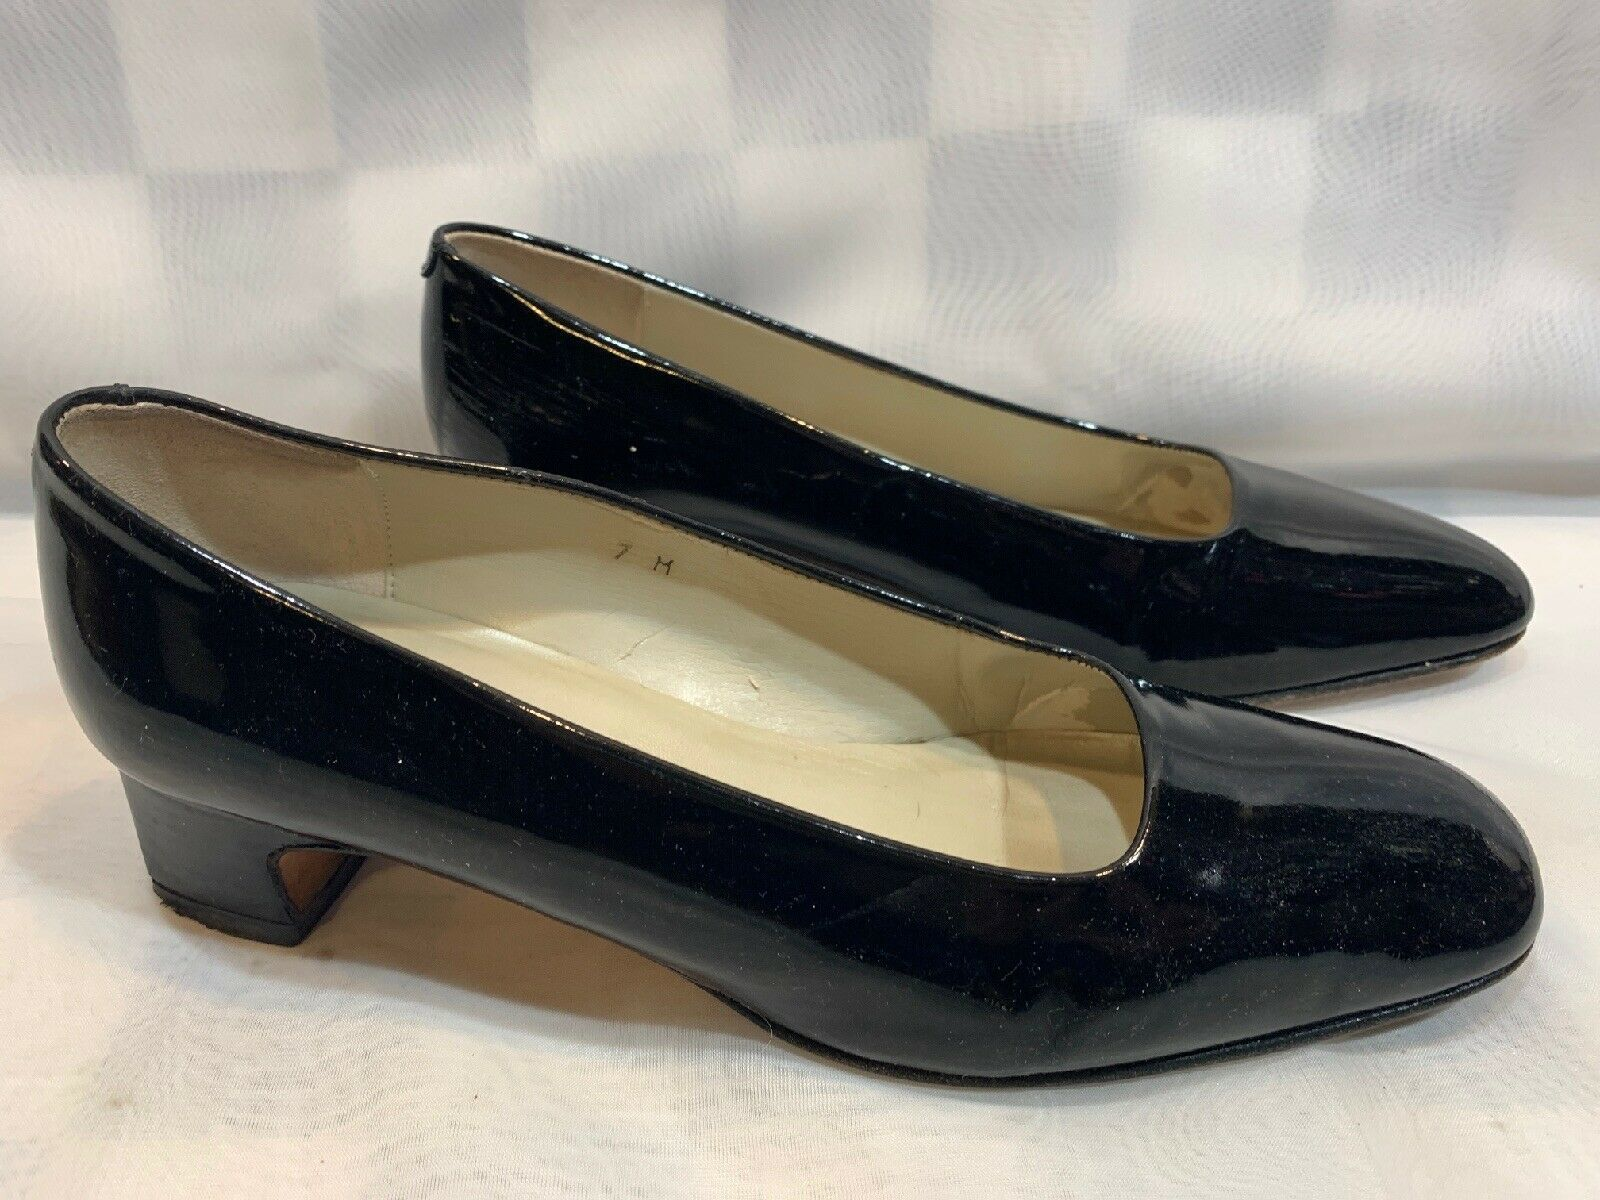 Primary image for TALBOTS Black Patent Heels Women's Shoes Size 7 M